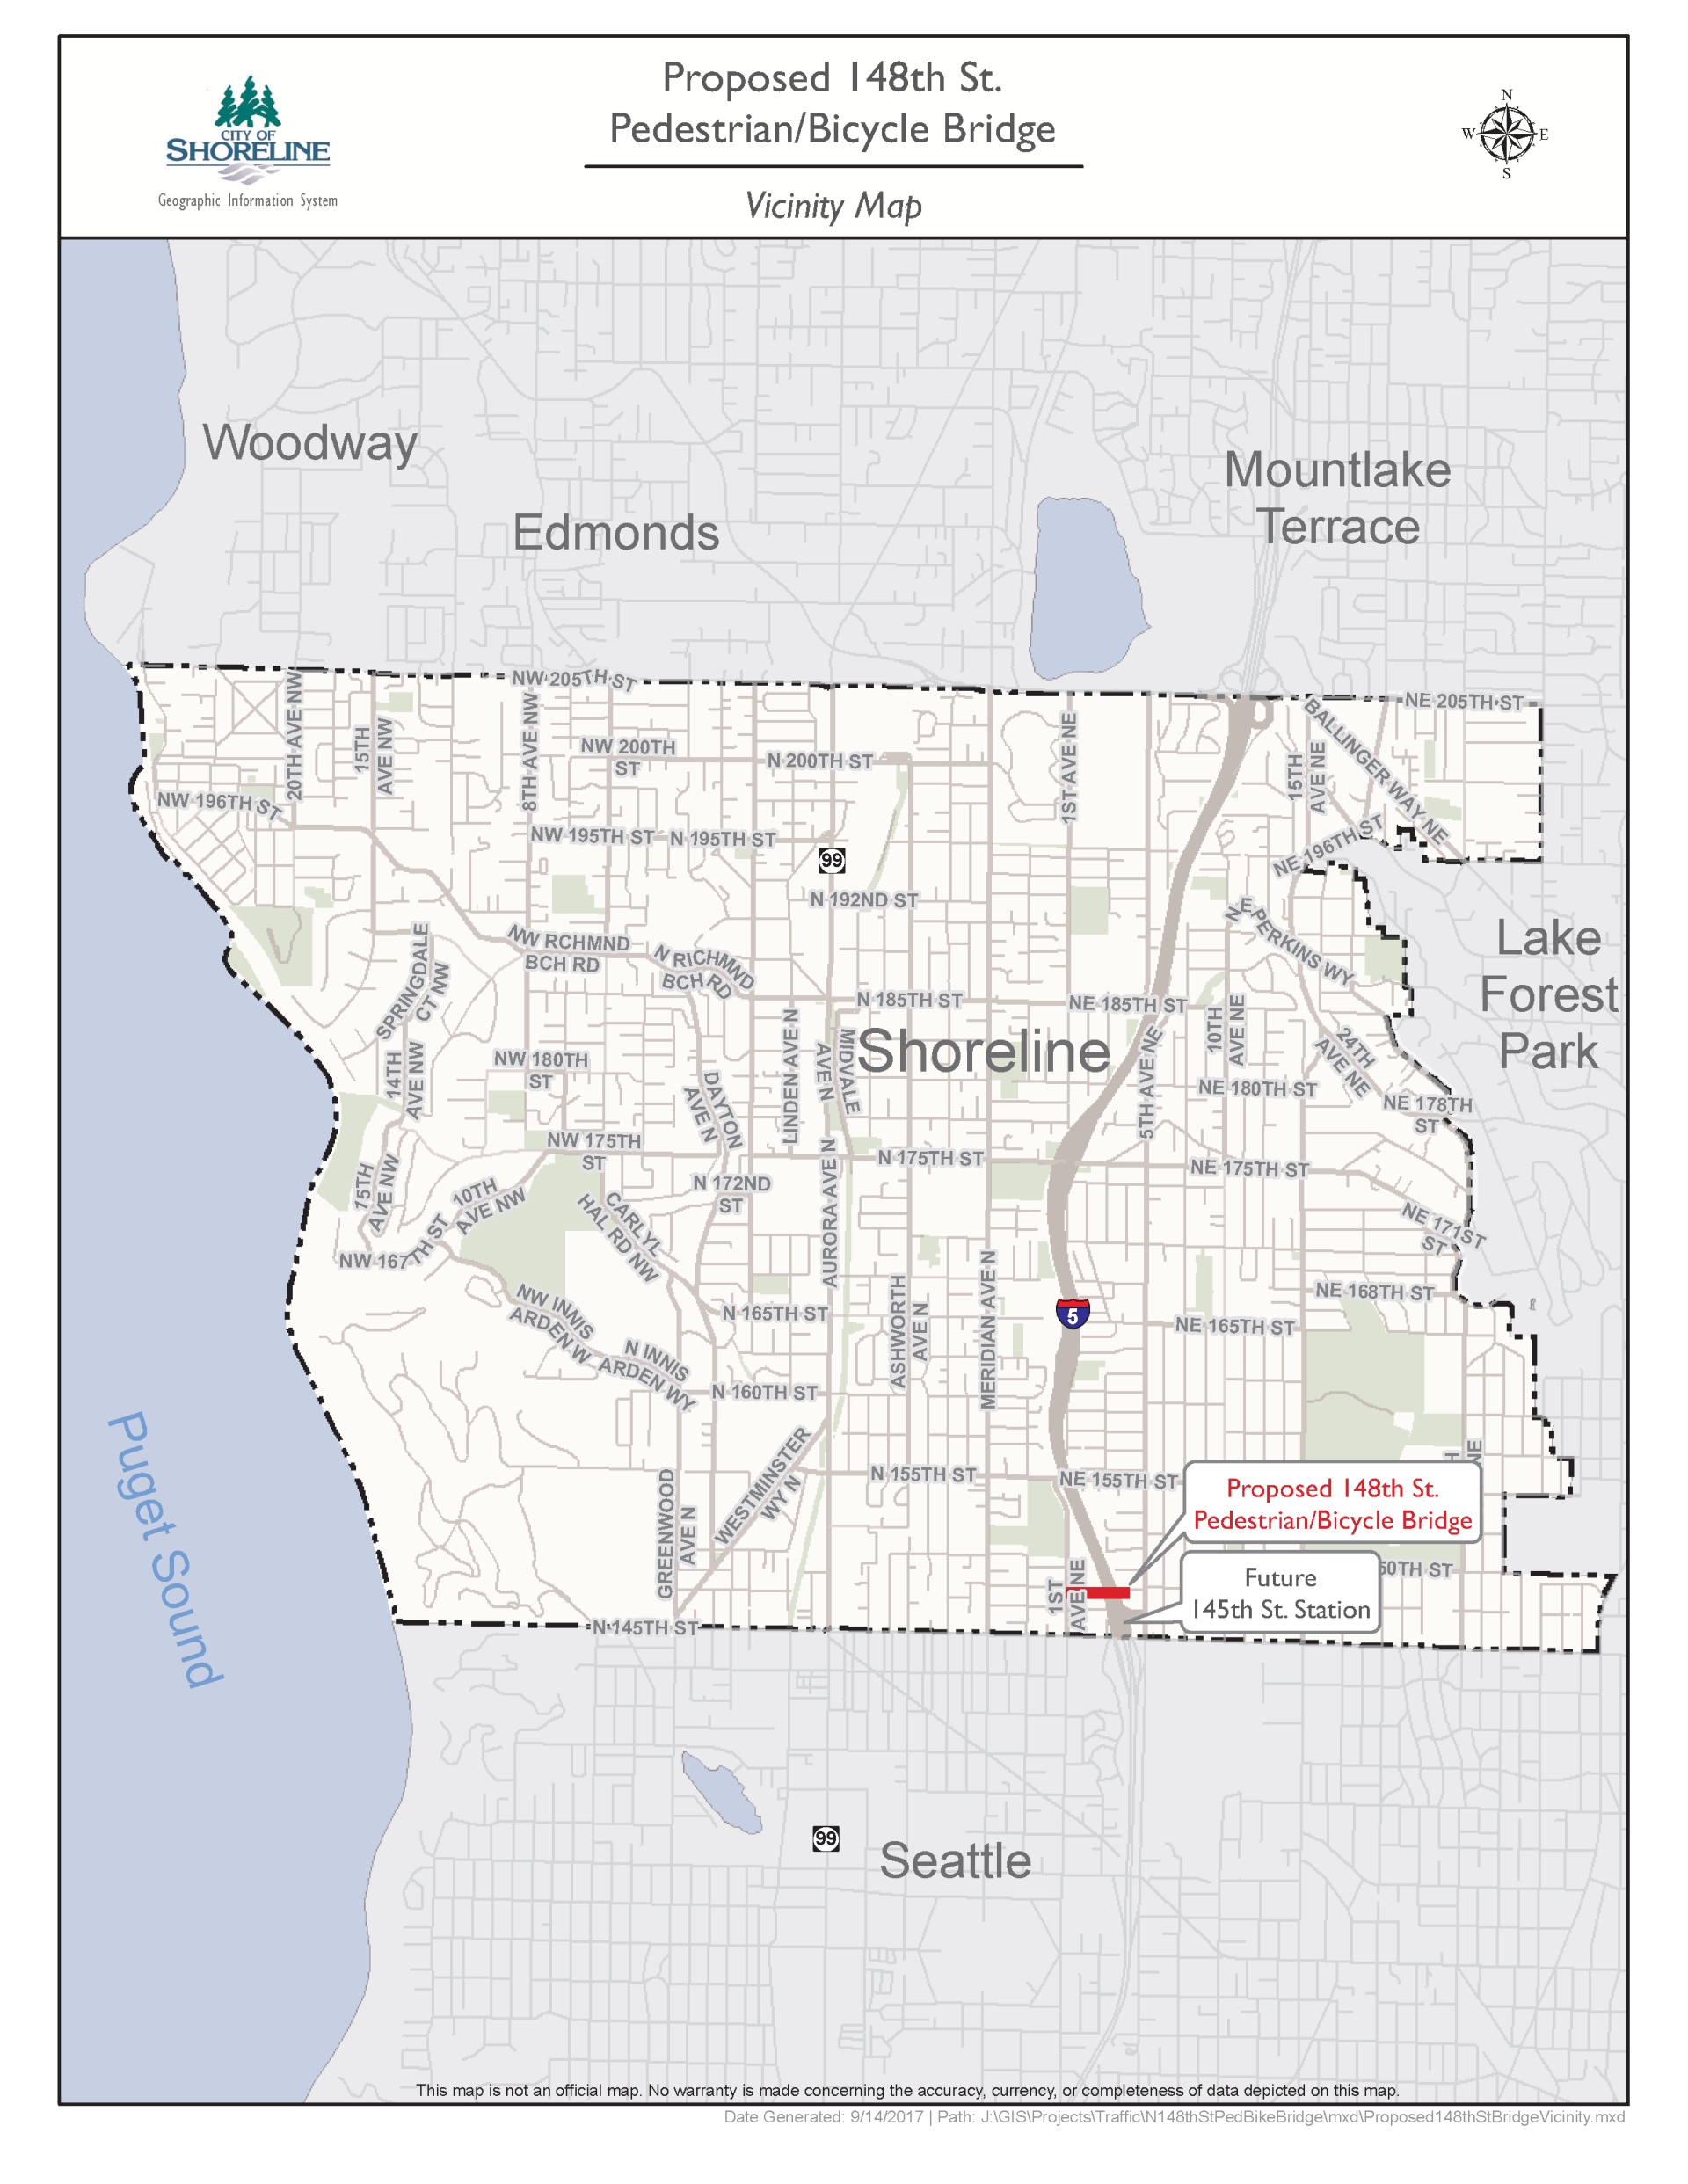 Map of Shoreline with location of potential 148th Street pedestrian bridge at the future 145th Street light rail station identified.